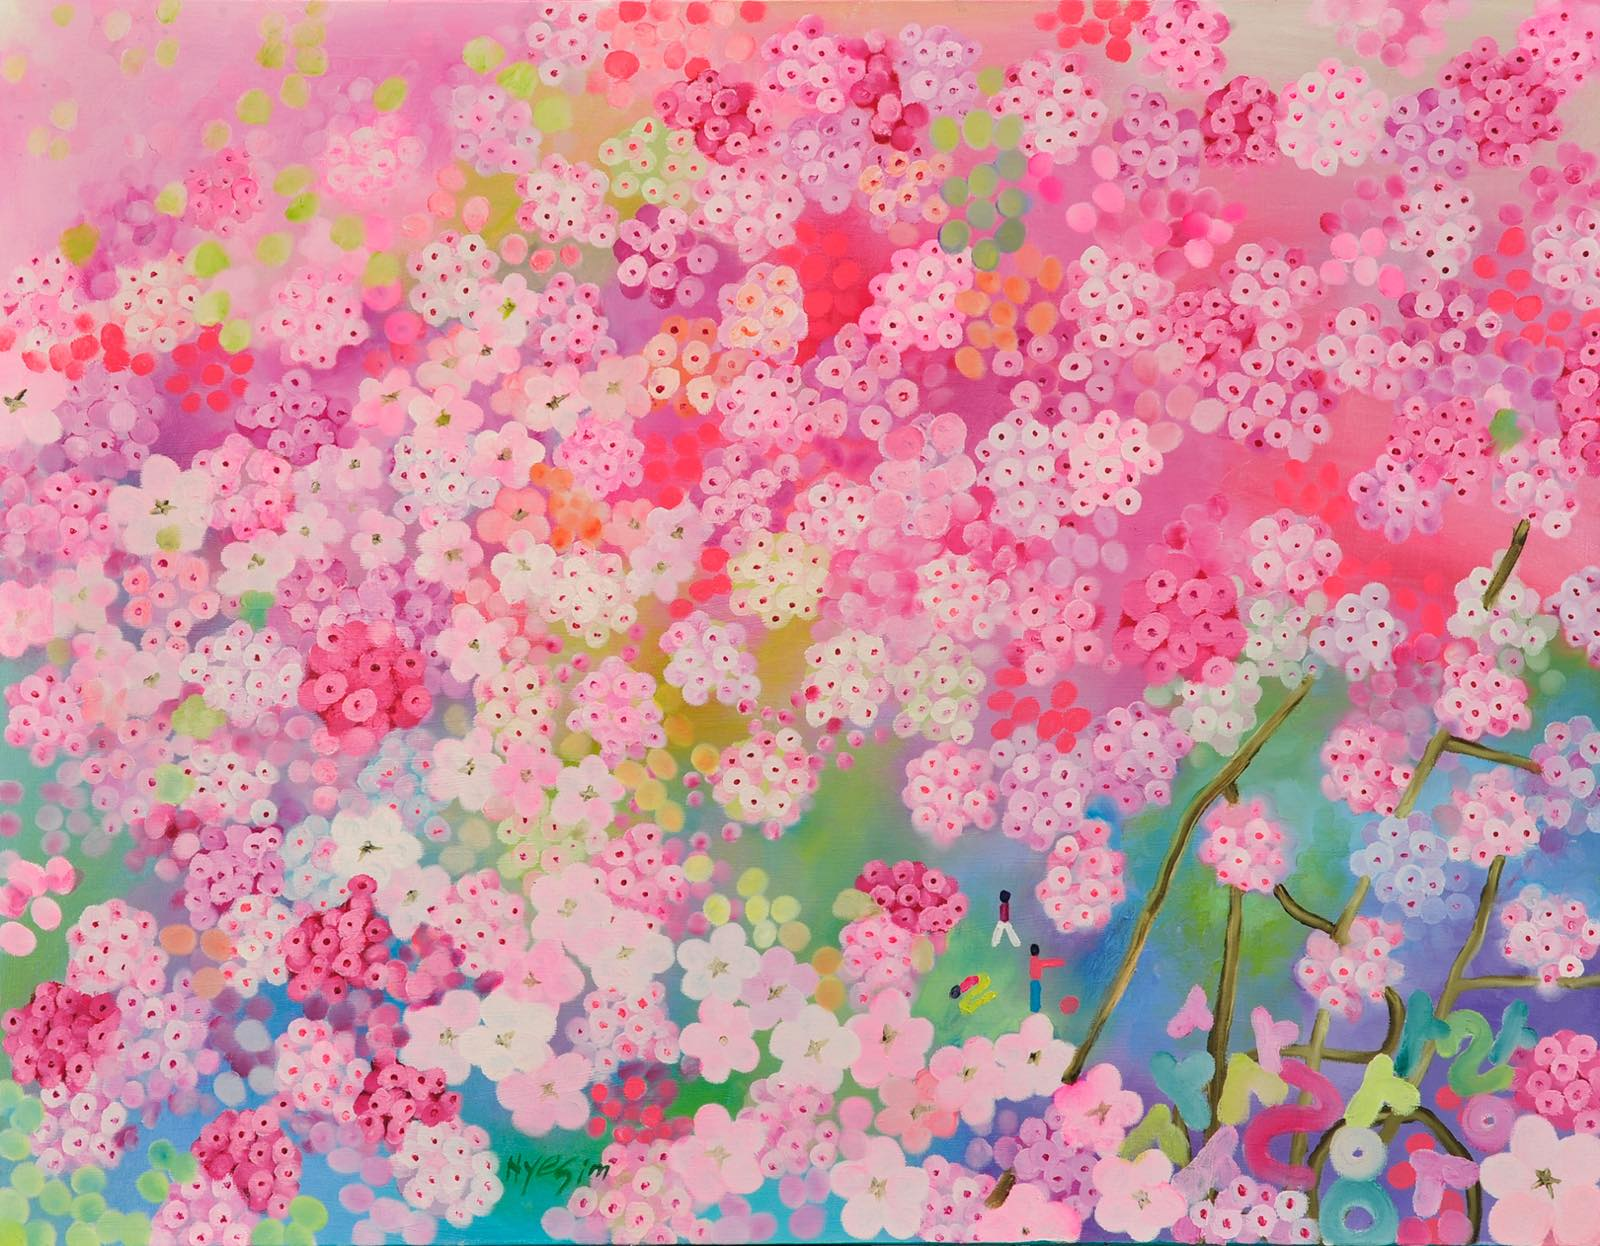 Hyesim Choi, Oil on Canvas, 116.7cm(W) x 91cm(H), 2013